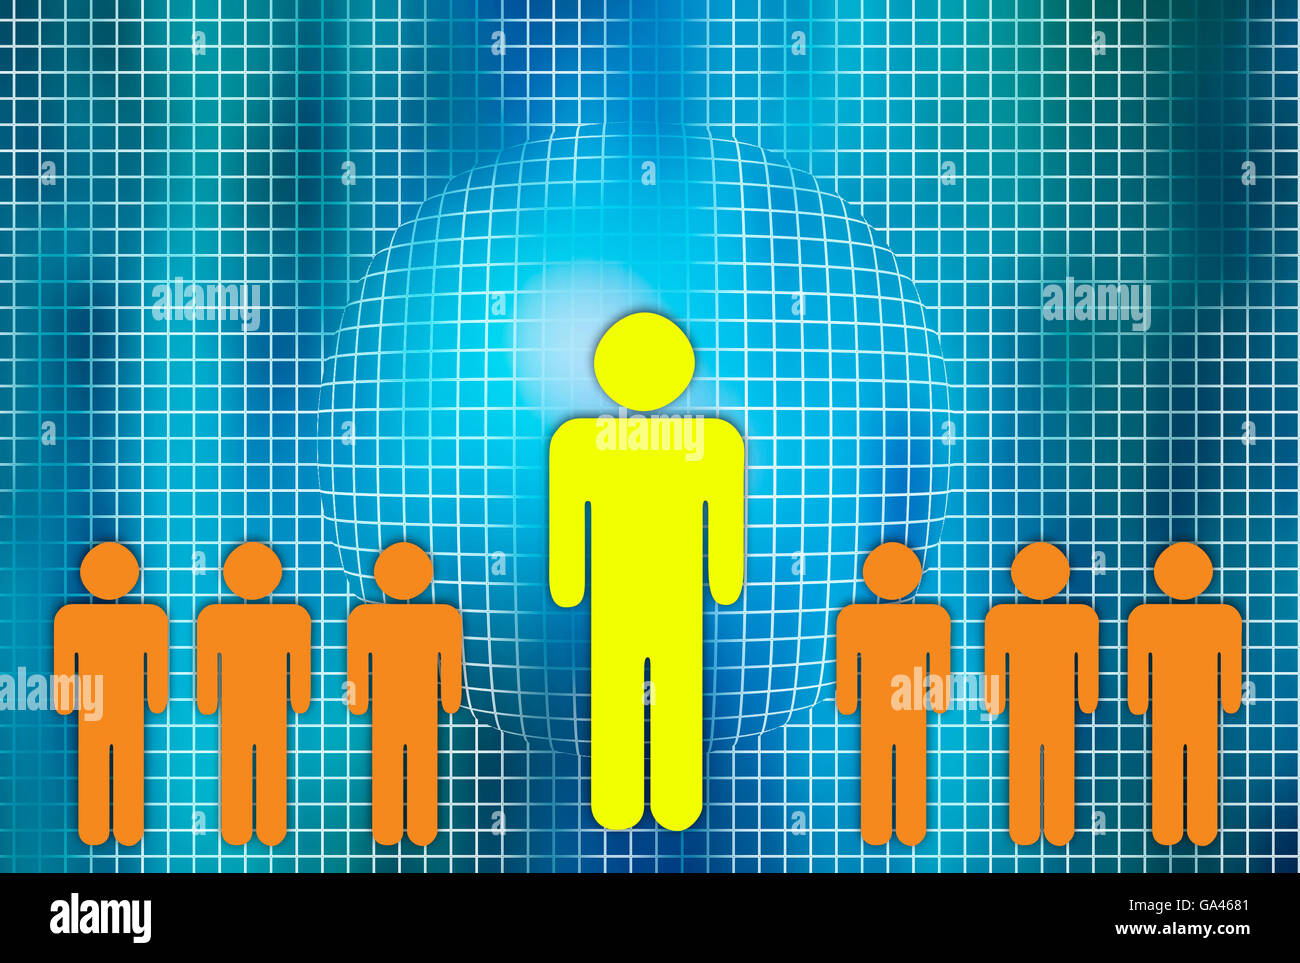 people social network concept illustration - Stock Image